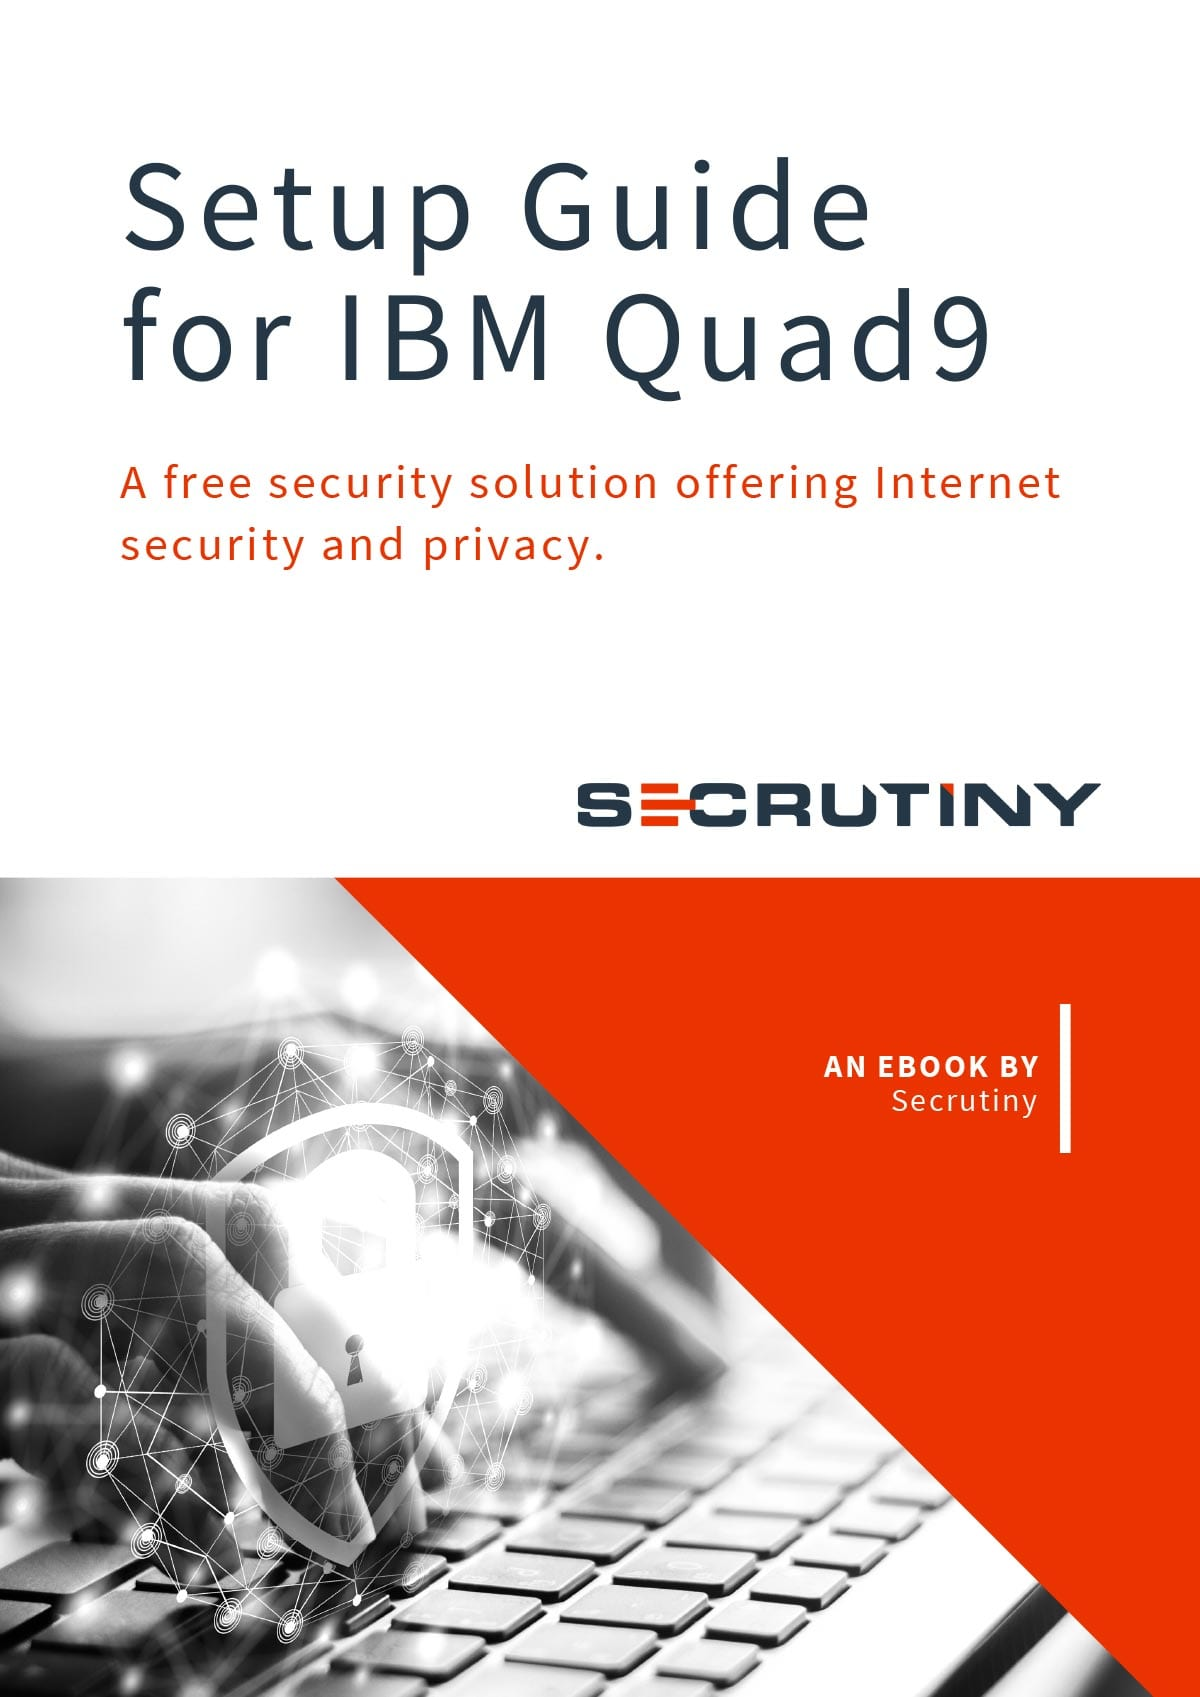 Secrutiny Cybersecurity - eBook - Setup Guide for IBM Quad9: A Free Security Solution Offering Internet Security and Privacy